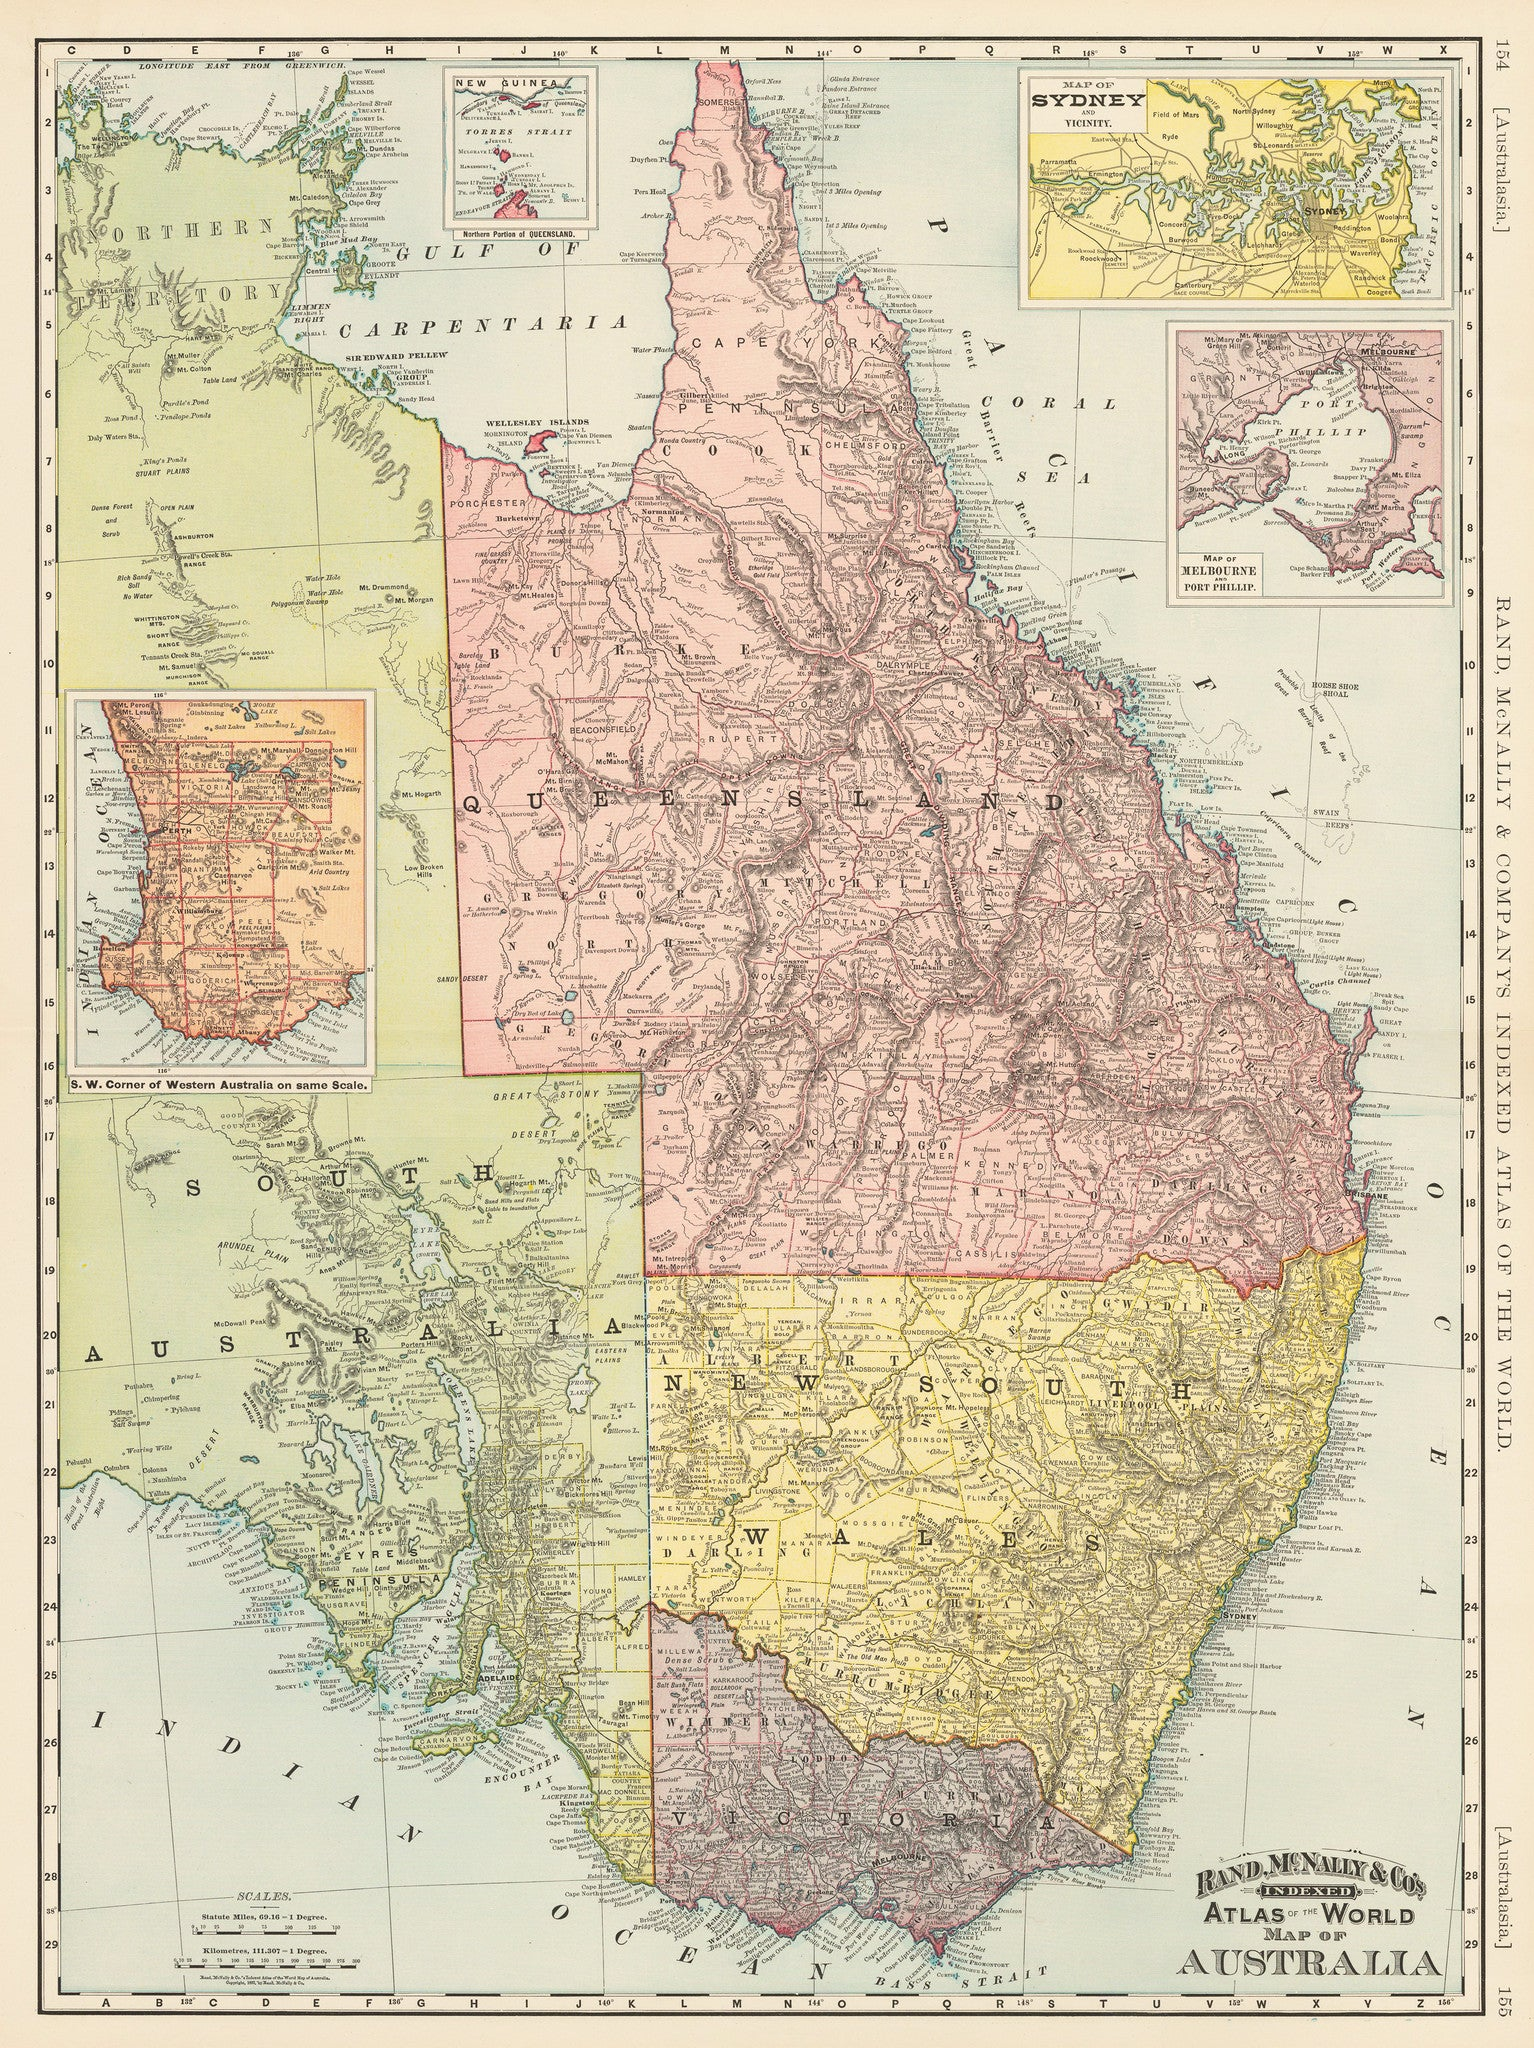 1892 map of australia by rand mcnally thevintagemapshop thevintagemapshop rand mcnally cos indexed atlas of the world map gumiabroncs Choice Image